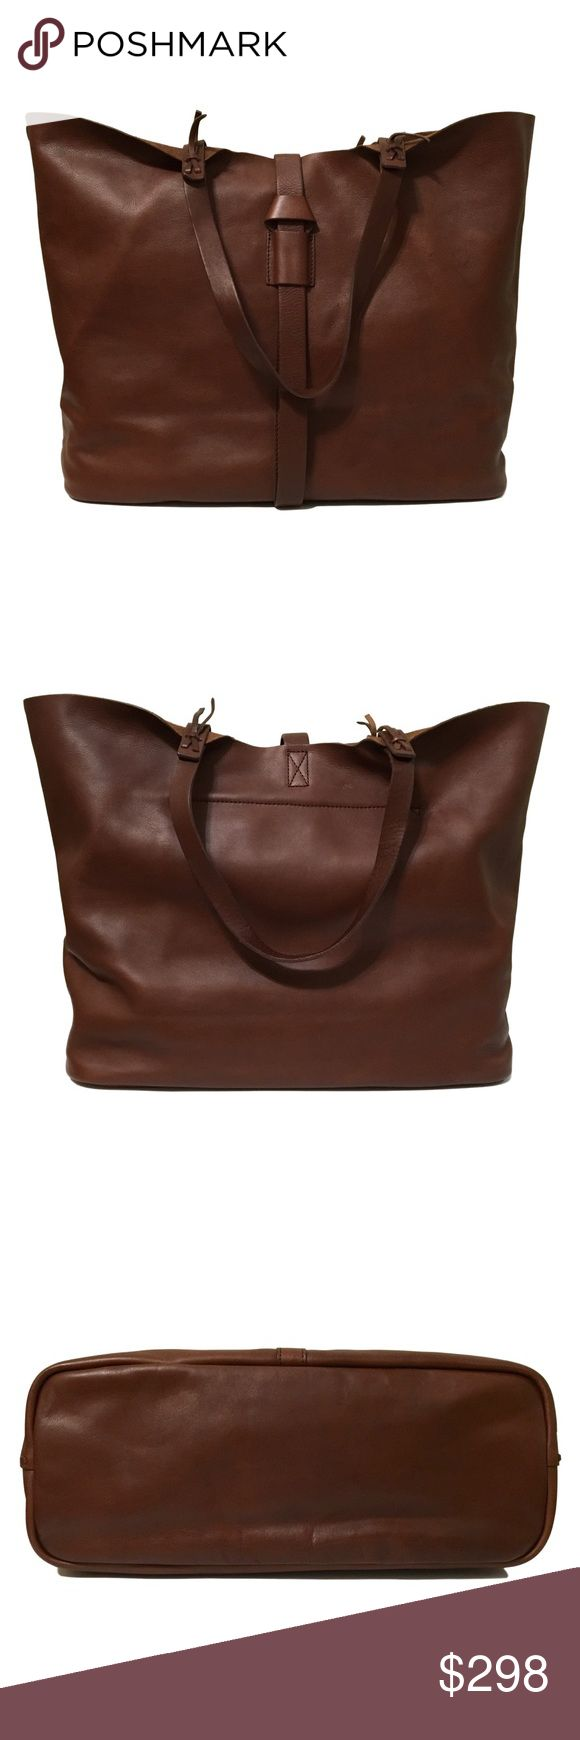 """✨ NWT Madewell Marin Tote in Bag Rich Brown A hard to find favorite in a gorgeous, mahogany rich brown color, deeper than English saddle. The perfect cary all! This bag is new, never used, but there are natural variations in the leather, which is normal for Madewell bags. Price is firm.  approximate measurements 8.25"""" handle drop 13.5""""h x 15""""w x 7""""d  ❌ Sorry, no trades.  507940  bucket saddle  fairlygirly Madewell Bags Totes"""